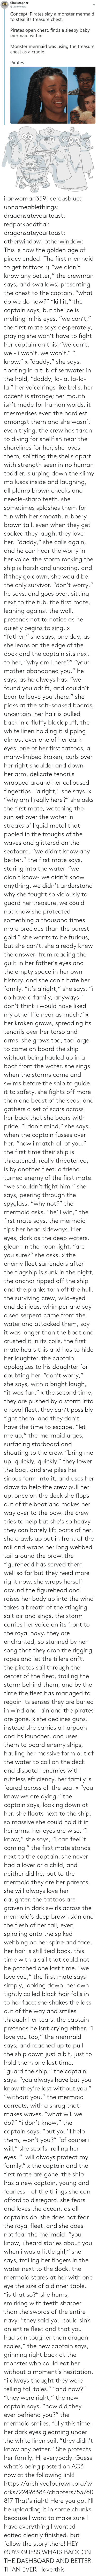 "Here You Go: ironwoman359: cereusblue:  unnameablethings:   dragonsateyourtoast:  redporkpadthai:  dragonsateyourtoast:  otherwindow:  otherwindow: This is how the golden age of piracy ended. The first mermaid to get tattoos :)   ""we didn't know any better,"" the crewman says, and swallows, presenting the chest to the captain. ""what do we do now?"" ""kill it,"" the captain says, but the ice is melting in his eyes. ""we can't,"" the first mate says desperately, praying she won't have to fight her captain on this. ""we can't. we - i won't. we won't."" ""i know."" x ""daddy,"" she says, floating in a tub of seawater in the hold, ""daddy, la-la, la-la-la."" her voice rings like bells. her accent is strange; her mouth isn't made for human words. it mesmerises even the hardiest amongst them and she wasn't even trying. the crew has taken to diving for shellfish near the shorelines for her; she loves them, splitting the shells apart with strength seen in no human toddler, slurping down the slimy molluscs inside and laughing, all plump brown cheeks and needle-sharp teeth. she sometimes splashes them for fun with her smooth, rubbery brown tail. even when they get soaked they laugh. they love her. ""daddy,"" she calls again, and he can hear the worry in her voice. the storm rocking the ship is harsh and uncaring, and if they go down, she would be the only survivor. ""don't worry,"" he says, and goes over, sitting next to the tub. the first mate, leaning against the wall, pretends not to notice as he quietly begins to sing. x ""father,"" she says, one day, as she leans on the edge of the dock and the captain sits next to her, ""why am I here?"" ""your mother abandoned you,"" he says, as he always has. ""we found you adrift, and couldn't bear to leave you there."" she picks at the salt-soaked boards, uncertain. her hair is pulled back in a fluffy black puff, the white linen holding it slipping almost over one of her dark eyes. one of her first tattoos, a many-limbed kraken, curls over her right shoulder and down her arm, delicate tendrils wrapped around her calloused fingertips. ""alright,"" she says. x ""why am I really here?"" she asks the first mate, watching the sun set over the water in streaks of liquid metal that pooled in the troughs of the waves and glittered on the seafoam. ""we didn't know any better,"" the first mate says, staring into the water. ""we didn't know- we didn't know anything. we didn't understand why she fought so viciously to guard her treasure. we could not know she protected something a thousand times more precious than the purest gold."" she wants to be furious, but she can't. she already knew the answer, from reading the guilt in her father's eyes and the empty space in her own history. and she can't hate her family. ""it's alright,"" she says. ""i do have a family, anyways. i don't think i would have liked my other life near as much."" x her kraken grows, spreading its tendrils over her torso and arms. she grows too, too large to come on board the ship without being hauled up in a boat from the water. she sings when the storms come and swims before the ship to guide it to safety. she fights off more than one beast of the seas, and gathers a set of scars across her back that she bears with pride. ""i don't mind,"" she says, when the captain fusses over her, ""now i match all of you."" the first time their ship is threatened, really threatened, is by another fleet. a friend turned enemy of the first mate. ""we shouldn't fight him,"" she says, peering through the spyglass. ""why not?"" the mermaid asks. ""he'll win,"" the first mate says. the mermaid tips her head sideways. Her eyes, dark as the deep waters, gleam in the noon light. ""are you sure?"" she asks. x the enemy fleet surrenders after the flagship is sunk in the night, the anchor ripped off the ship and the planks torn off the hull. the surviving crew, wild-eyed and delirious, whimper and say a sea serpent came from the water and attacked them, say it was longer than the boat and crushed it in its coils. the first mate hears this and has to hide her laughter. the captain apologizes to his daughter for doubting her. ""don't worry,"" she says, with a bright laugh, ""it was fun."" x the second time, they are pushed by a storm into a royal fleet. they can't possibly fight them, and they don't have the time to escape. ""let me up,"" the mermaid urges, surfacing starboard and shouting to the crew. ""bring me up, quickly, quickly."" they lower the boat and she piles her sinous form into it, and uses her claws to help the crew pull her up. once on the deck she flops out of the boat and makes her way over to the bow. the crew tries to help but she's so heavy they can barely lift parts of her. she crawls up out in front of the rail and wraps her long webbed tail around the prow. the figurehead has served them well so far but they need more right now. she wraps herself around the figurehead and raises her body up into the wind takes a breath of the stinging salt air and sings. the storm carries her voice on its front to the royal navy. they are enchanted, so stunned by her song that they drop the rigging ropes and let the tillers drift. the pirates sail through the center of the fleet, trailing the storm behind them, and by the time the fleet has managed to regain its senses they are buried in wind and rain and the pirates are gone. x she declines guns. instead she carries a harpoon and its launcher, and uses them to board enemy ships, hauling her massive form out of the water to coil on the deck and dispatch enemies with ruthless efficiency. her family is feared across all the sea. x ""you know we are dying,"" the captain says, looking down at her. she floats next to the ship, so massive she could hold it in her arms. her eyes are wise. ""i know,"" she says, ""i can feel it coming."" the first mate stands next to the captain. she never had a lover or a child, and neither did he, but to the mermaid they are her parents. she will always love her daughter. the tattoos are graven in dark swirls across the mermaid's deep brown skin and the flesh of her tail, even spiraling onto the spiked webbing on her spine and face. her hair is still tied back, this time with a sail that could not be patched one last time.  ""we love you,"" the first mate says simply, looking down. her own tightly coiled black hair falls in to her face; she shakes the locs out of the way and smiles through her tears. the captain pretends he isnt crying either. ""i love you too,"" the mermaid says, and reached up to pull the ship down just a bit, just to hold them one last time. ""guard the ship,"" the captain says. ""you always have but you know they're lost without you."" ""without you,"" the mermaid corrects, with a shrug that makes waves. ""what will we do?"" ""i don't know,"" the captain says. ""but you'll help them, won't you?"" ""of course i will,"" she scoffs, rolling her eyes. ""i will always protect my family."" x the captain and the first mate are gone. the ship has a new captain, young and fearless - of the things she can afford to disregard. she fears and loves the ocean, as all captains do. she does not fear the royal fleet. and she does not fear the mermaid. ""you know, i heard stories about you when i was a little girl,"" she says, trailing her fingers in the water next to the dock. the mermaid stares at her with one eye the size of a dinner table. ""is that so?"" she hums, smirking with teeth sharper than the swords of the entire navy. ""they said you could sink an entire fleet and that you had skin tougher than dragon scales,"" the new captain says, grinning right back at the monster who could eat her without a moment's hesitation. ""i always thought they were telling tall tales."" ""and now?"" ""they were right,"" the new captain says. ""how did they ever befriend you?"" the mermaid smiles, fully this time, her dark eyes gleaming under the white linen sail. ""they didn't know any better.""  She protects her family.  Hi everybody! Guess what's being posted on AO3 now at the following link! https://archiveofourown.org/works/22498384/chapters/53760817 That's right! Here you go. I'll be uploading it in some chunks, because I want to make sure I have everything I wanted edited cleanly finished, but follow the story there!     HEY GUYS GUESS WHATS BACK ON THE DASHBOARD AND BETTER THAN EVER    I love this"